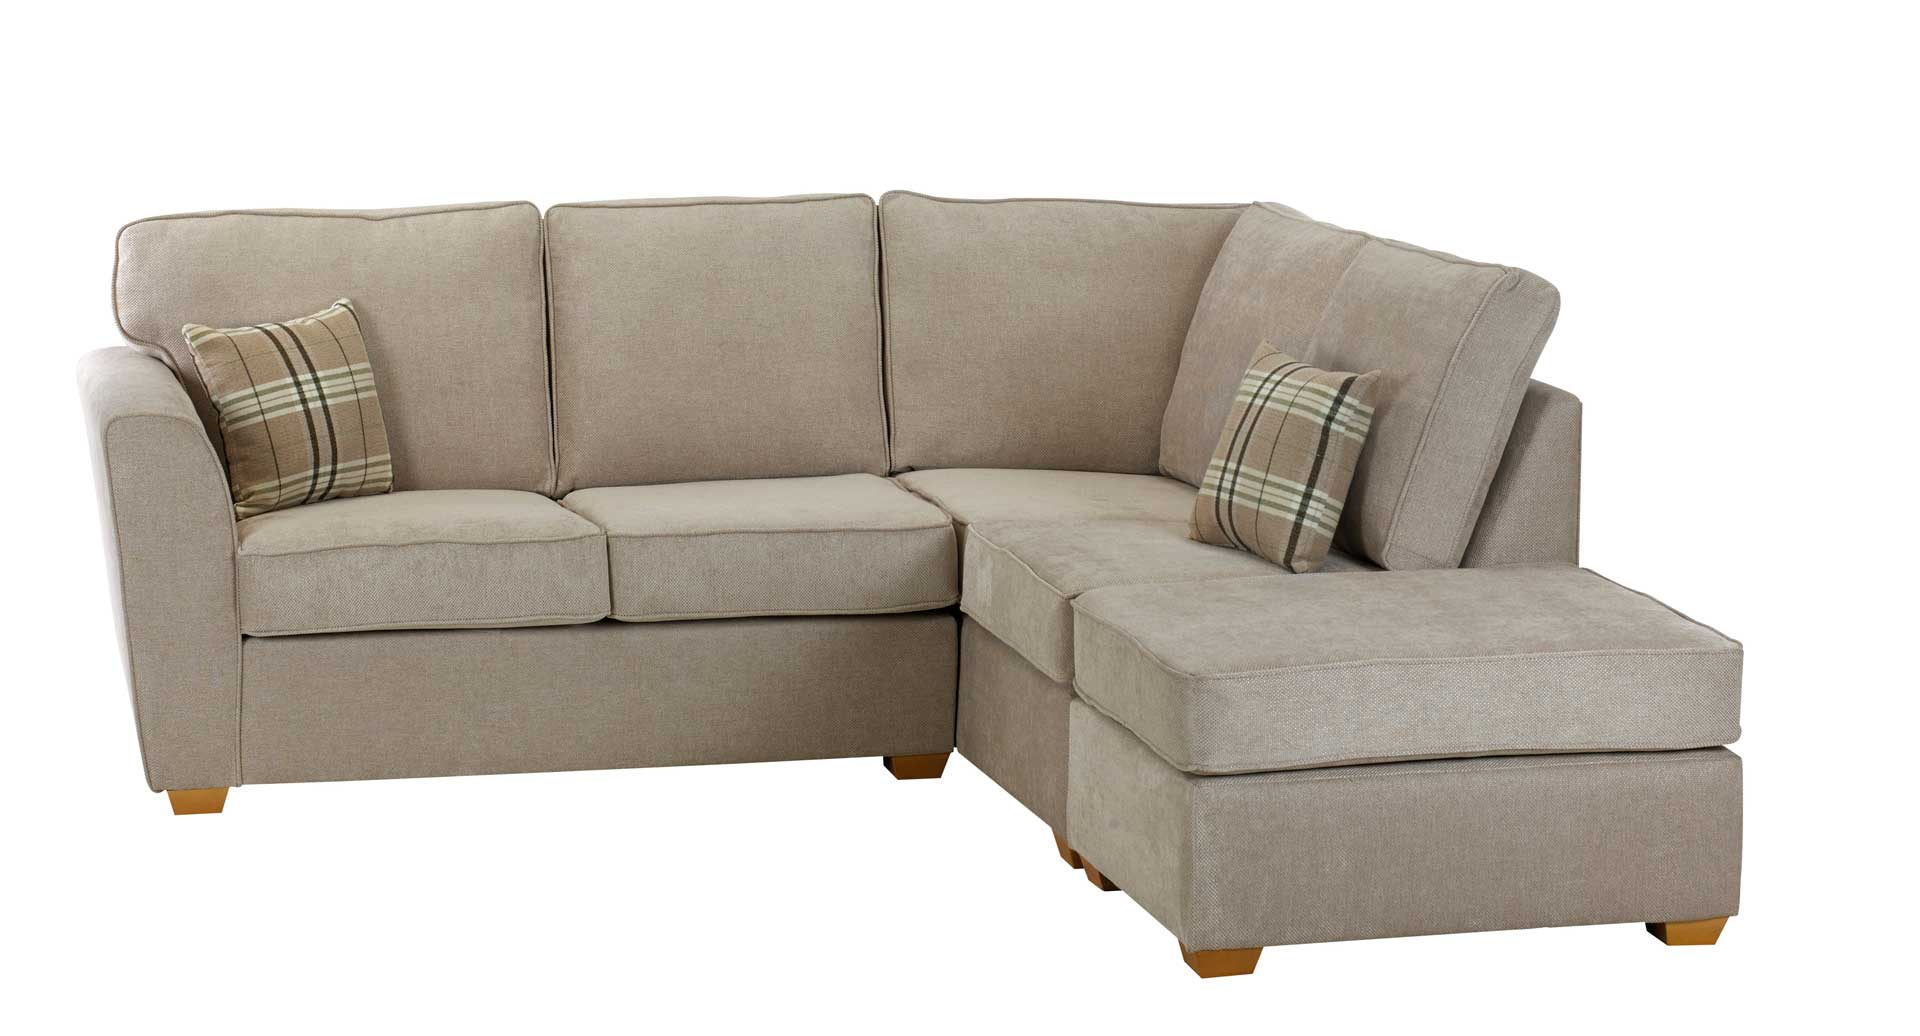 Bluebell Chaise - available as a chaise, 3 seater, 2 seater and chair.